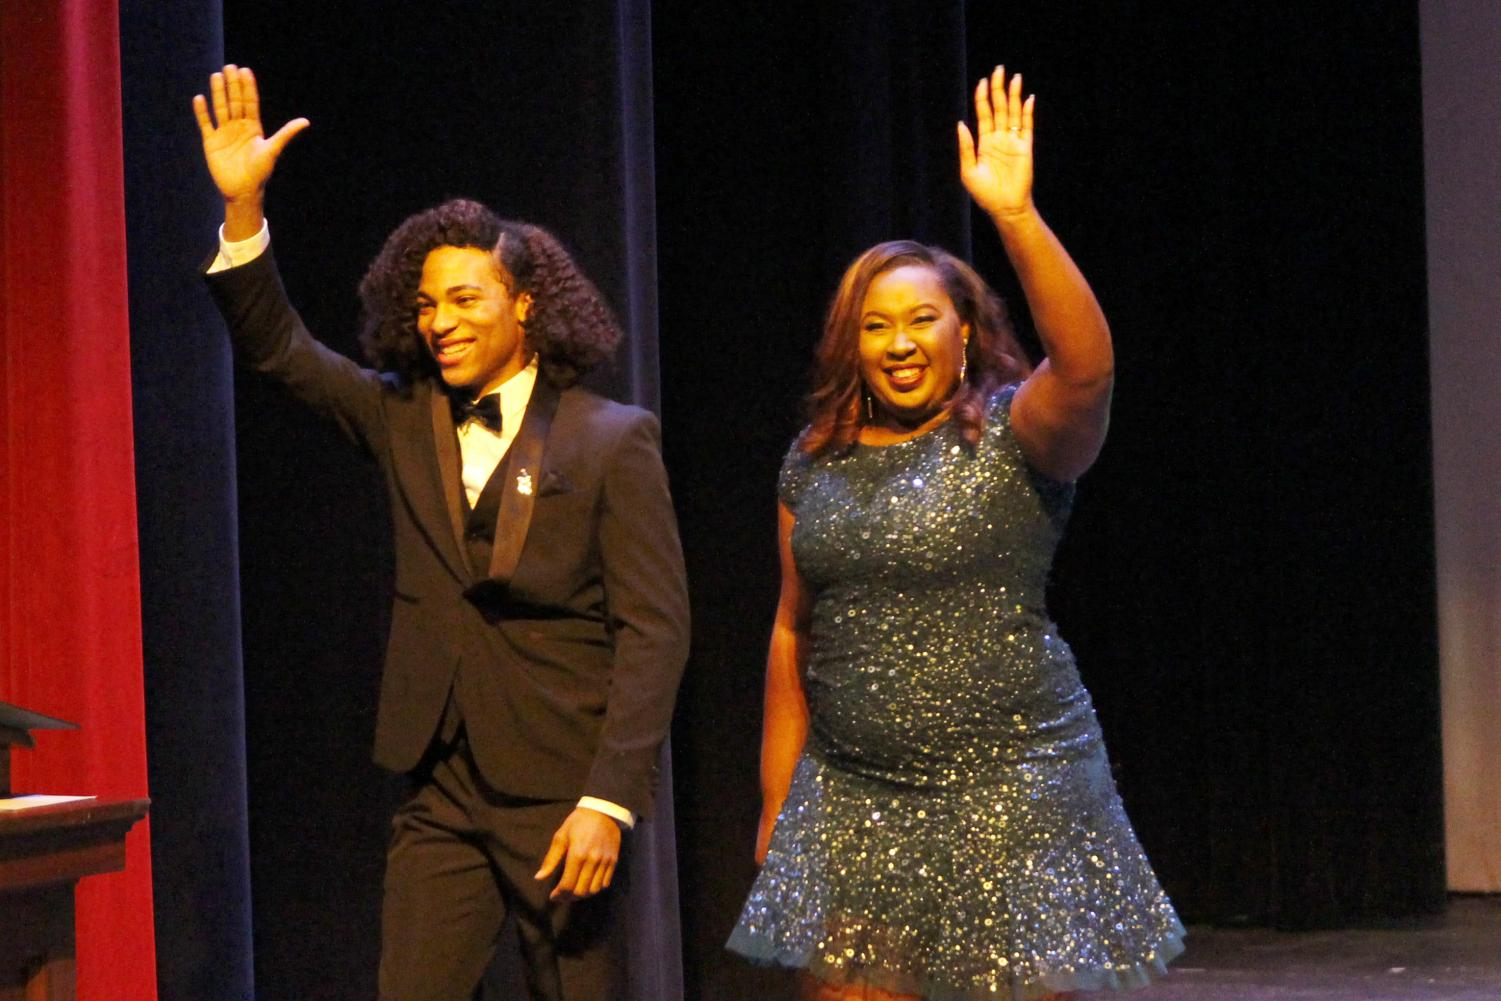 """Tyron'E Hawkins served as one of the emcees for the """"Miss Southeastern Louisiana University Pageant"""" last fall."""